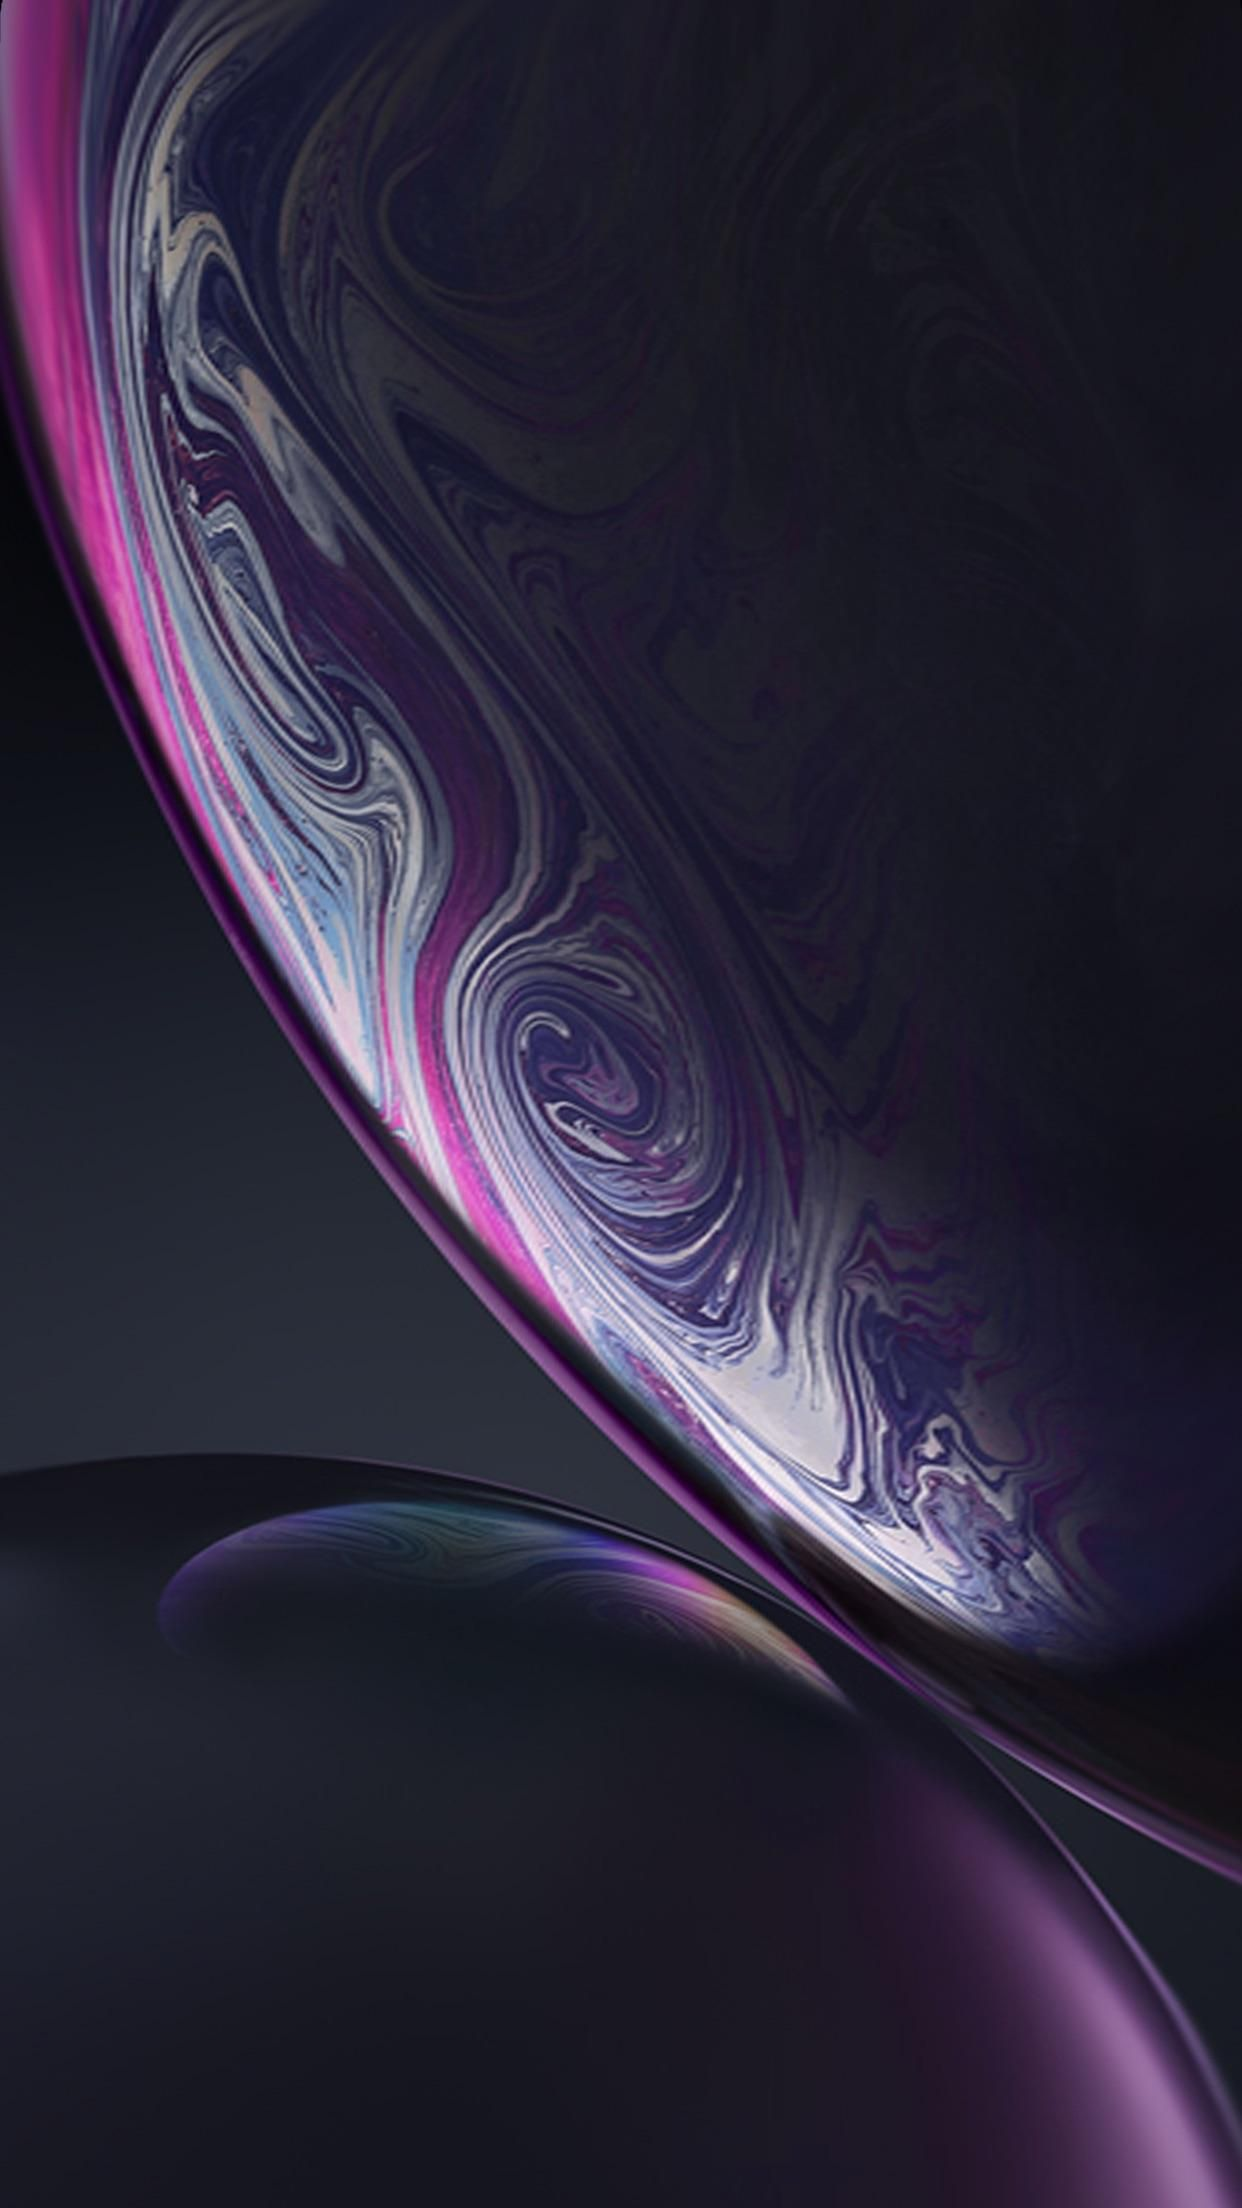 Iphone Xr Wallpaper Wallpapers For Cell Phones In 2019 Apple